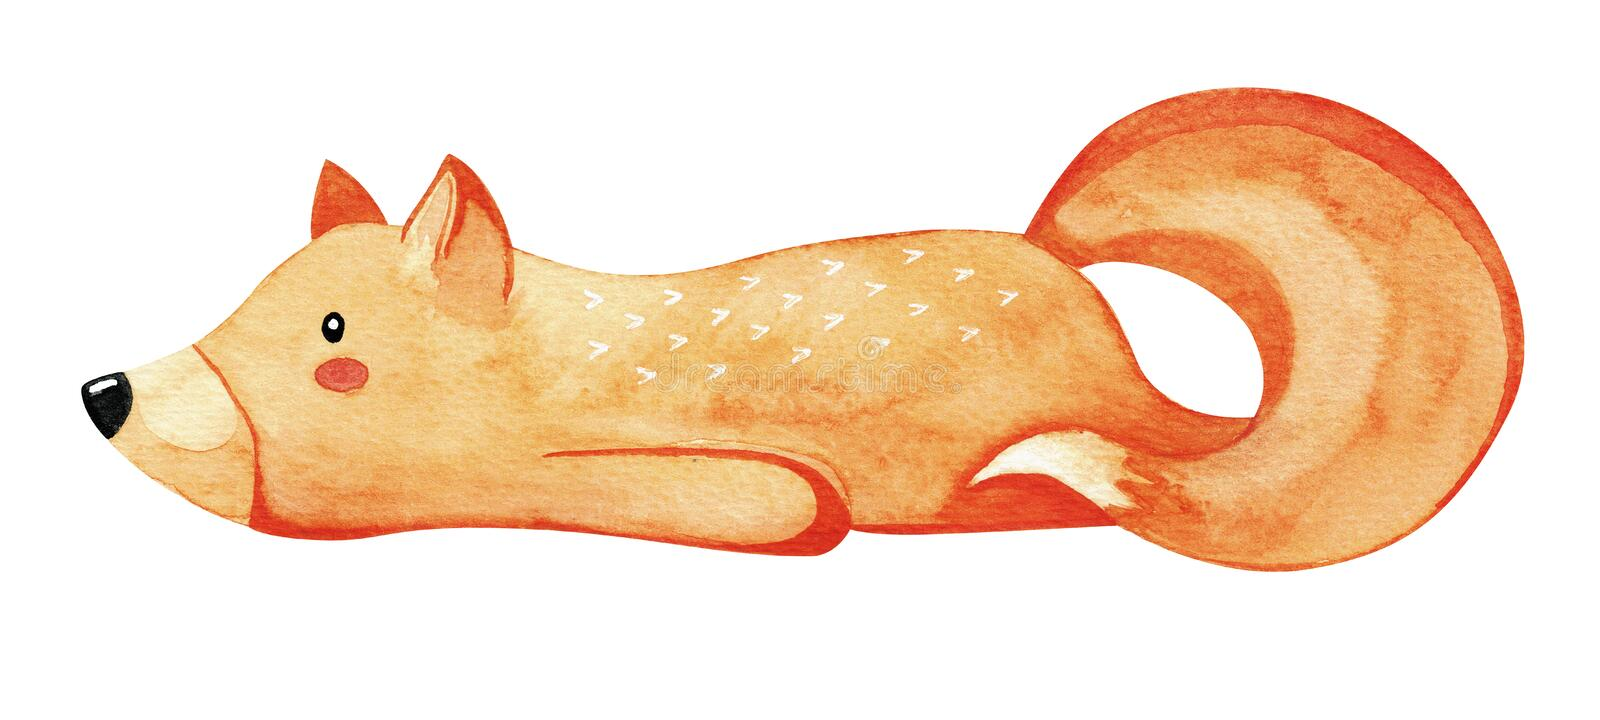 Cute lazy fox. Red fox isolated on white background. Watercolor. Cute lazy fox. Red fox isolated on white background. Watercolor royalty free illustration